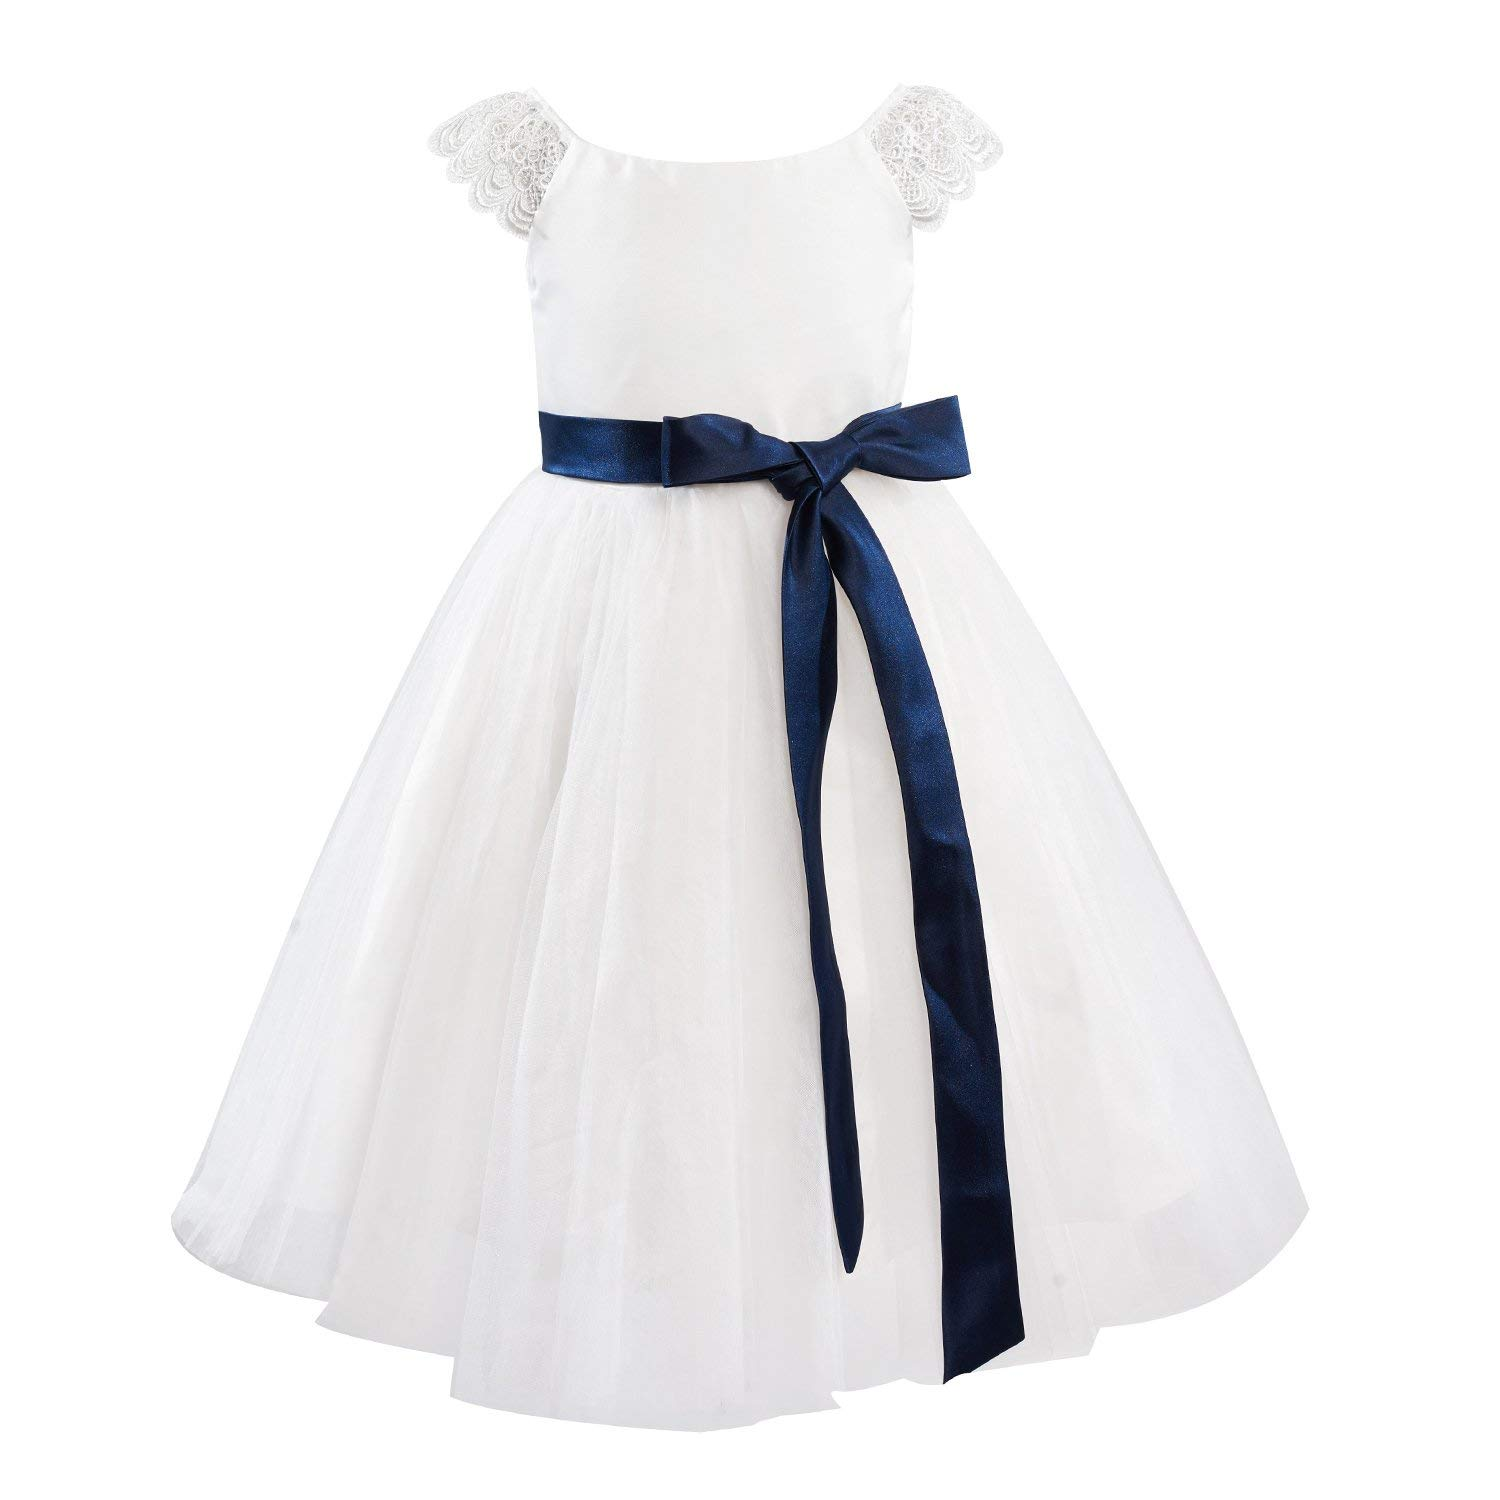 Cheap Ivory Tulle Flower Girl Dress Find Ivory Tulle Flower Girl